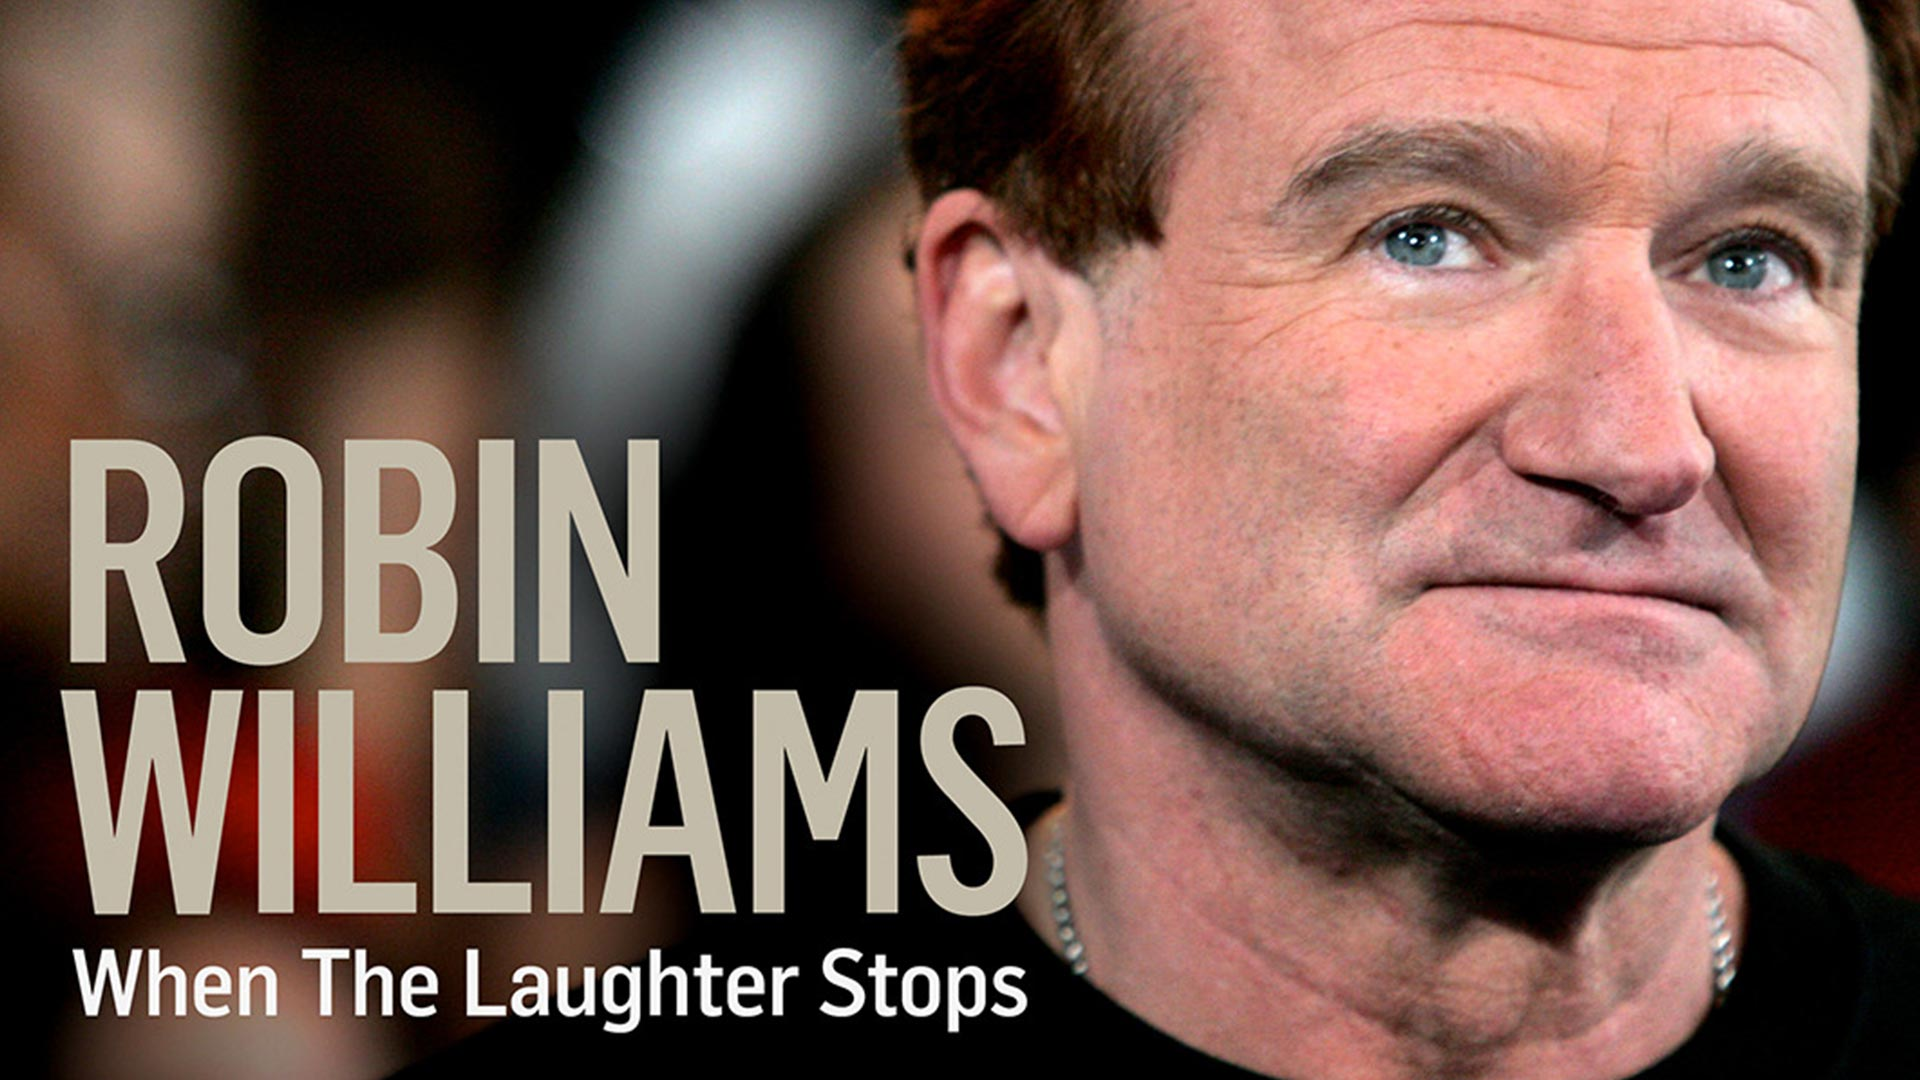 Robin Williams: The Laughter Stops